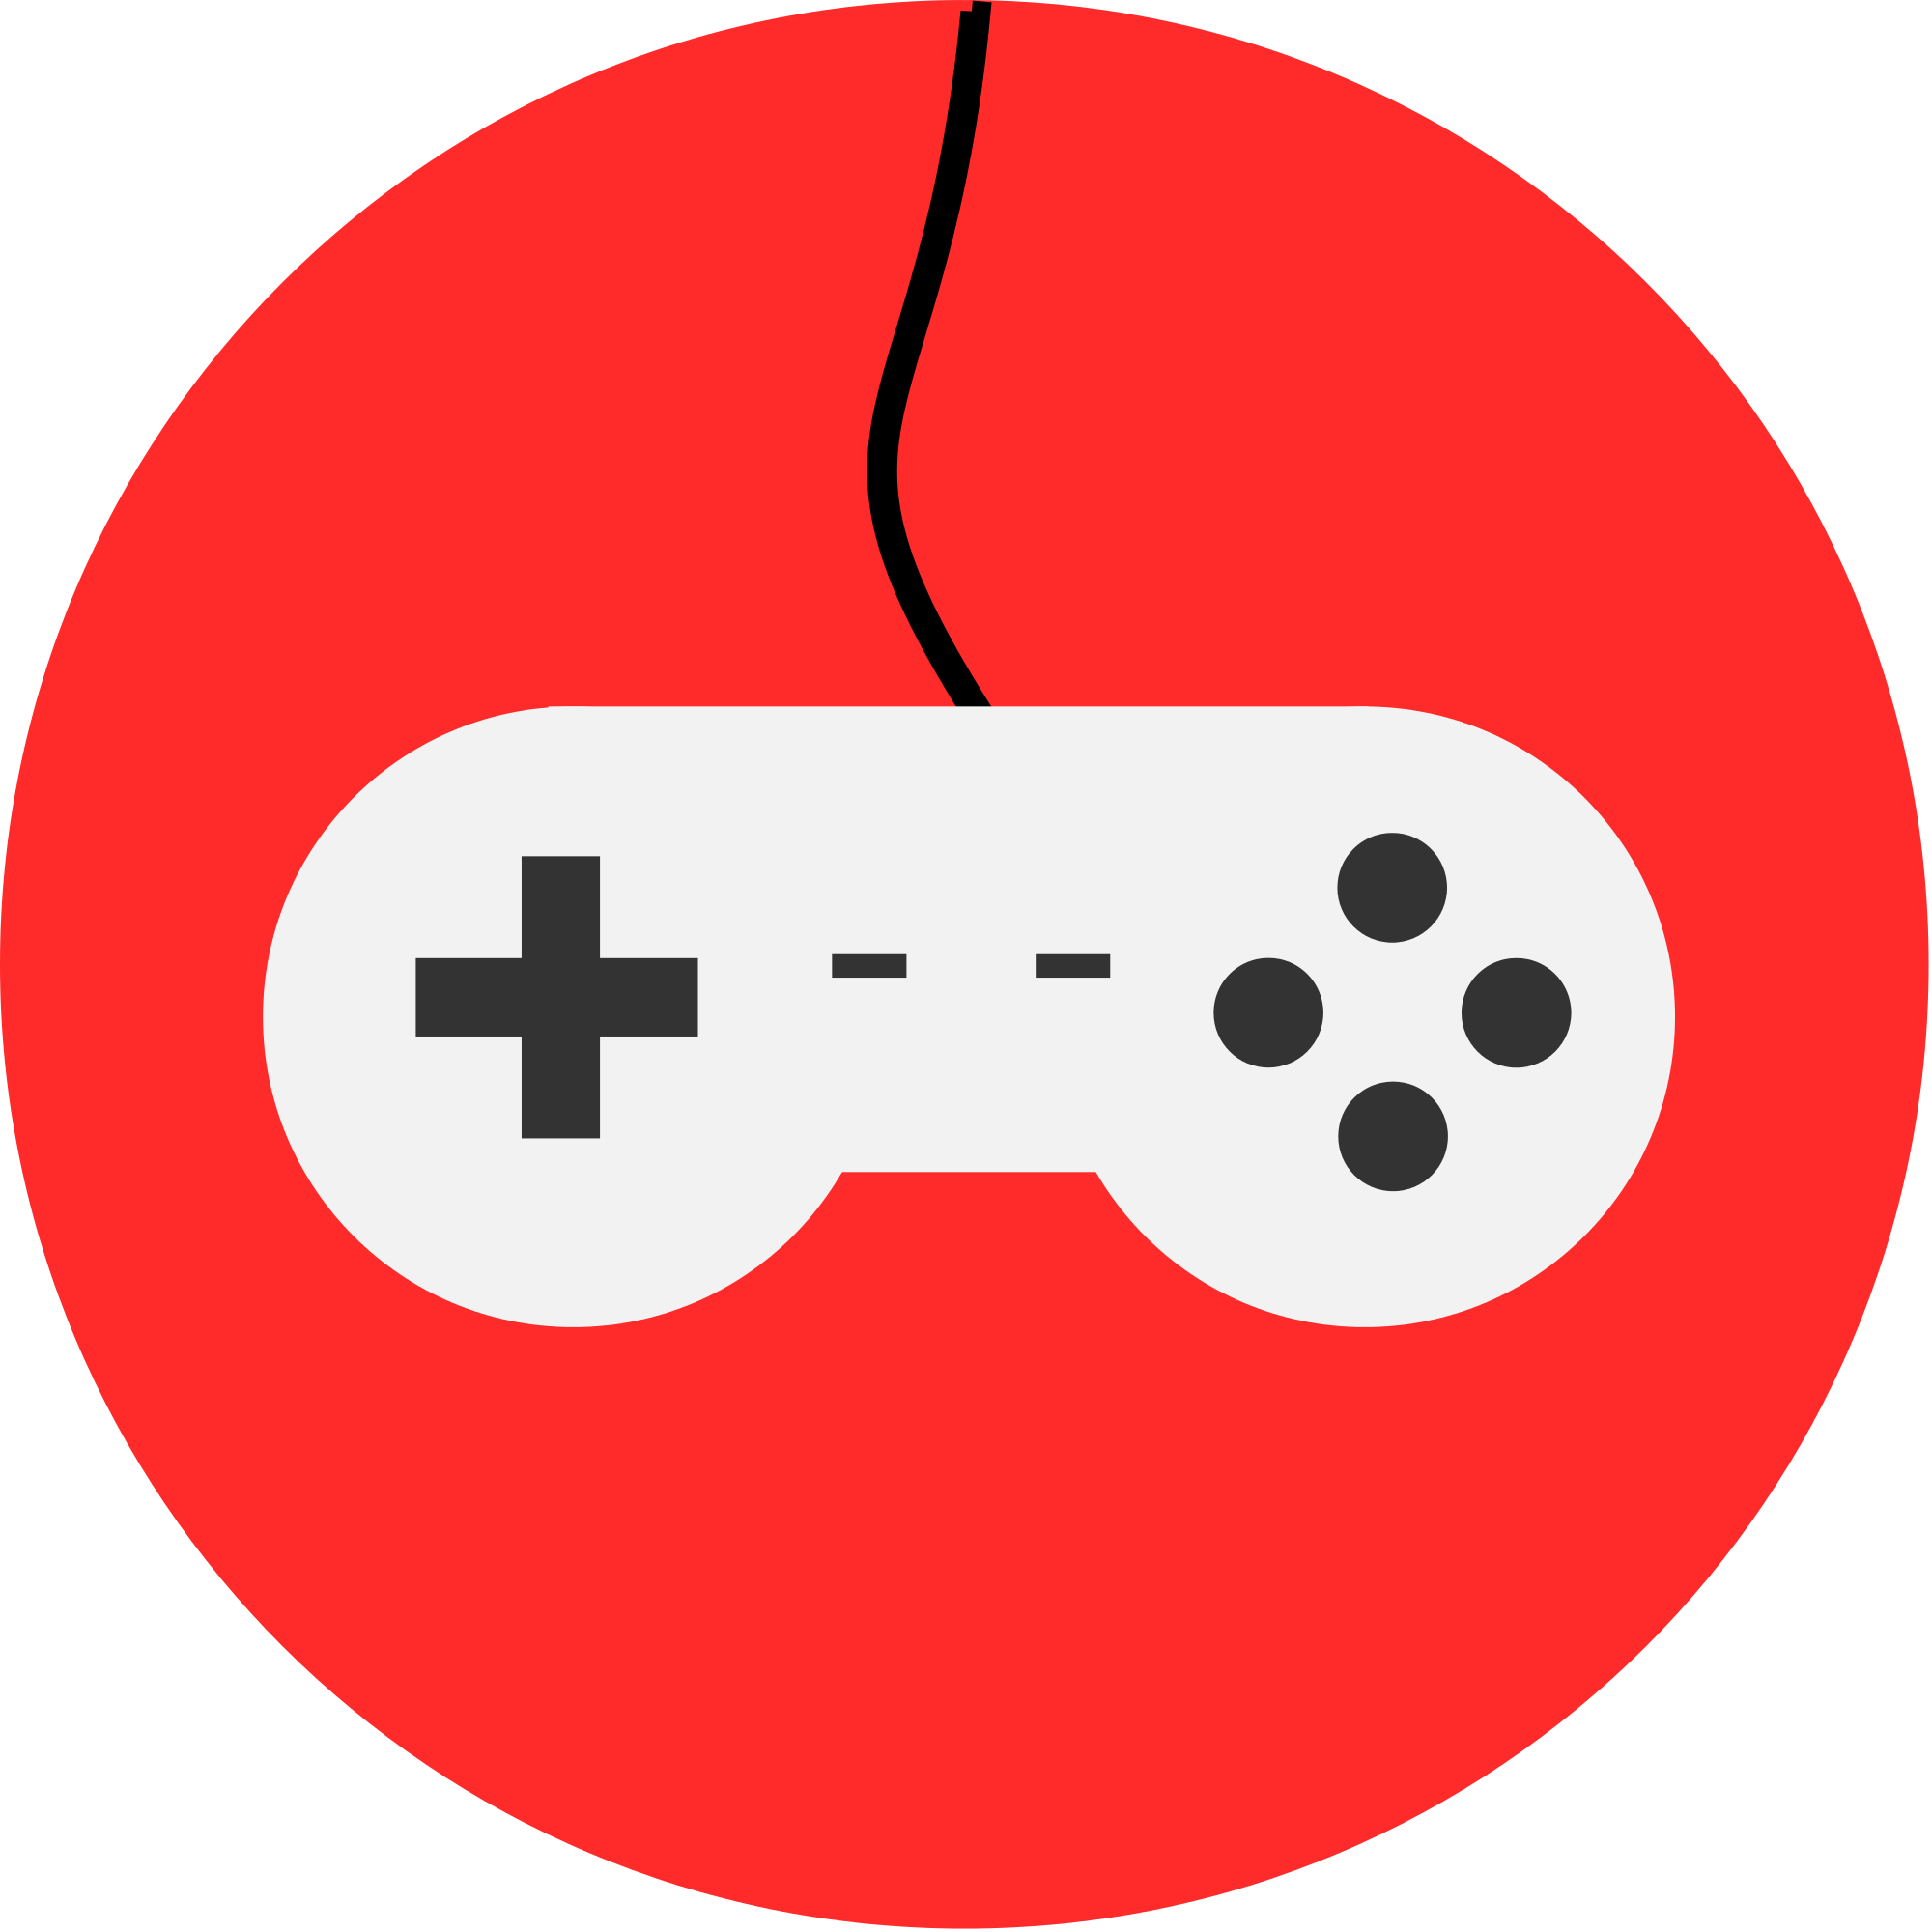 Controller clipart simple. File video game icon